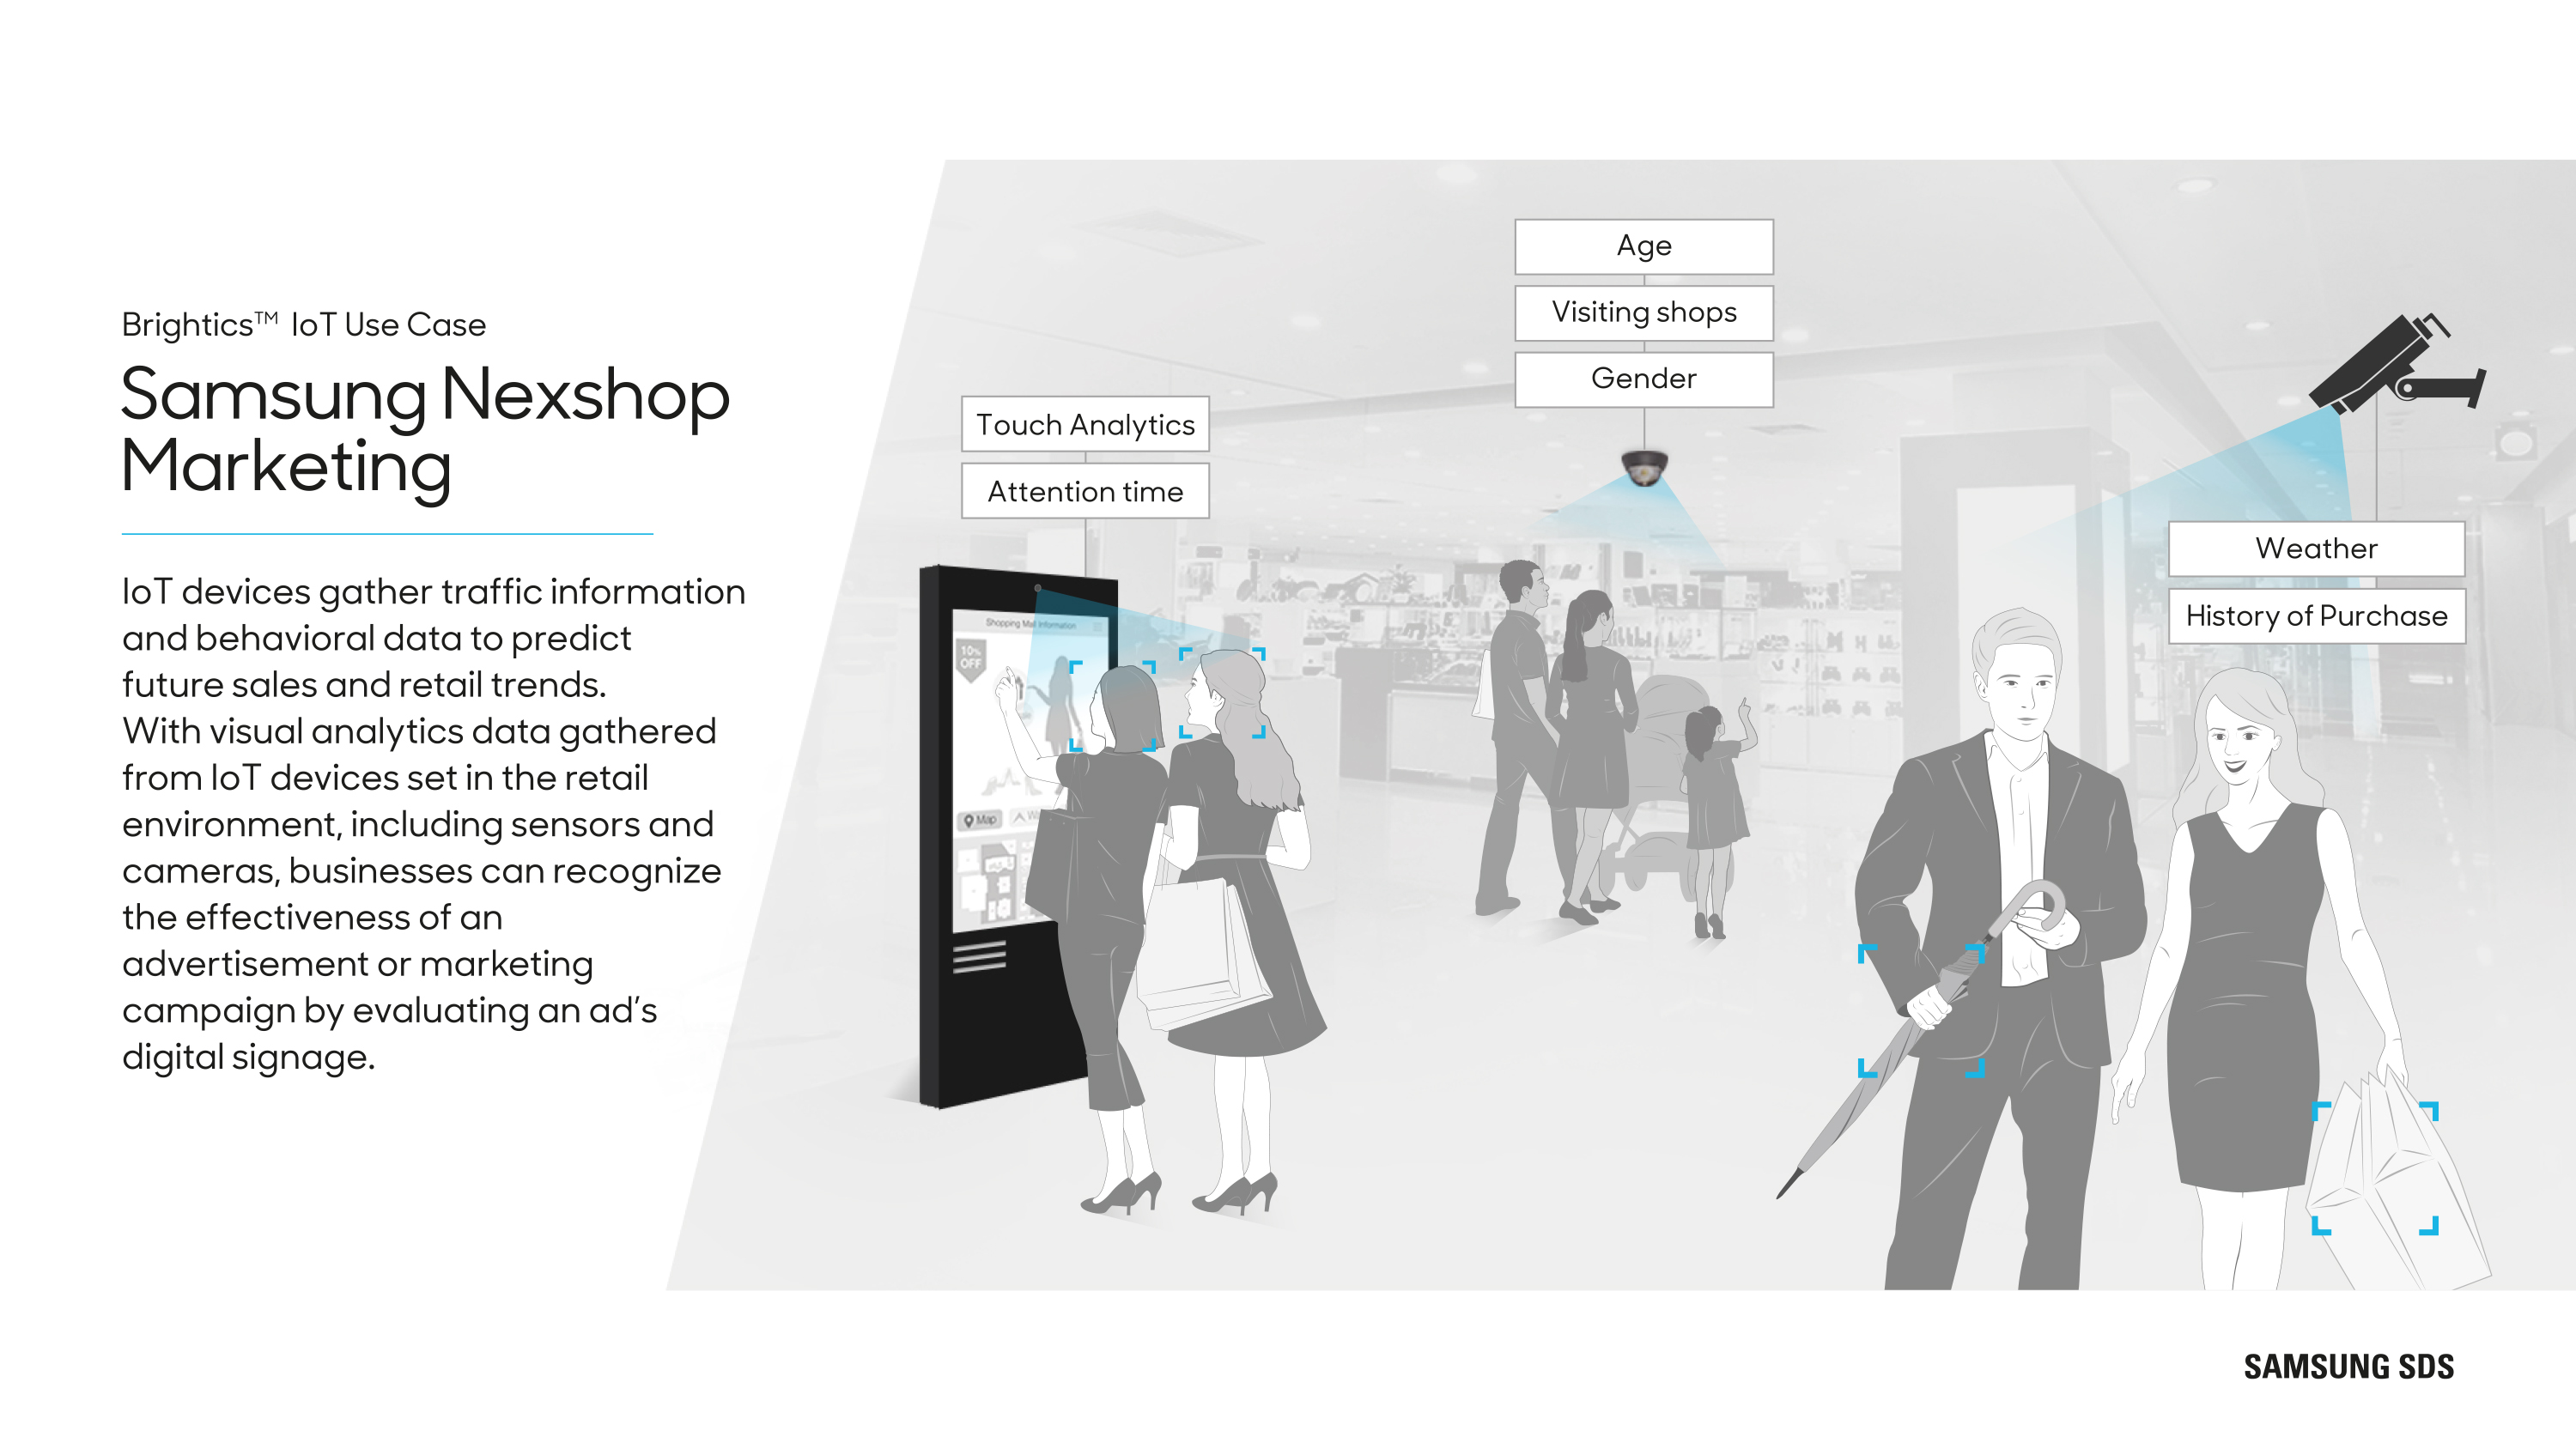 Nexshop Marketing IoT devices gather traffic information and behavioral data to predict future sales and retail trends. With visual analytics data gathered from IoT devices set in the retail environment, including sensors and cameras, businesses can recognize the effectiveness of an advertisement or marketing campaign by evaluating an ad's digital signage.